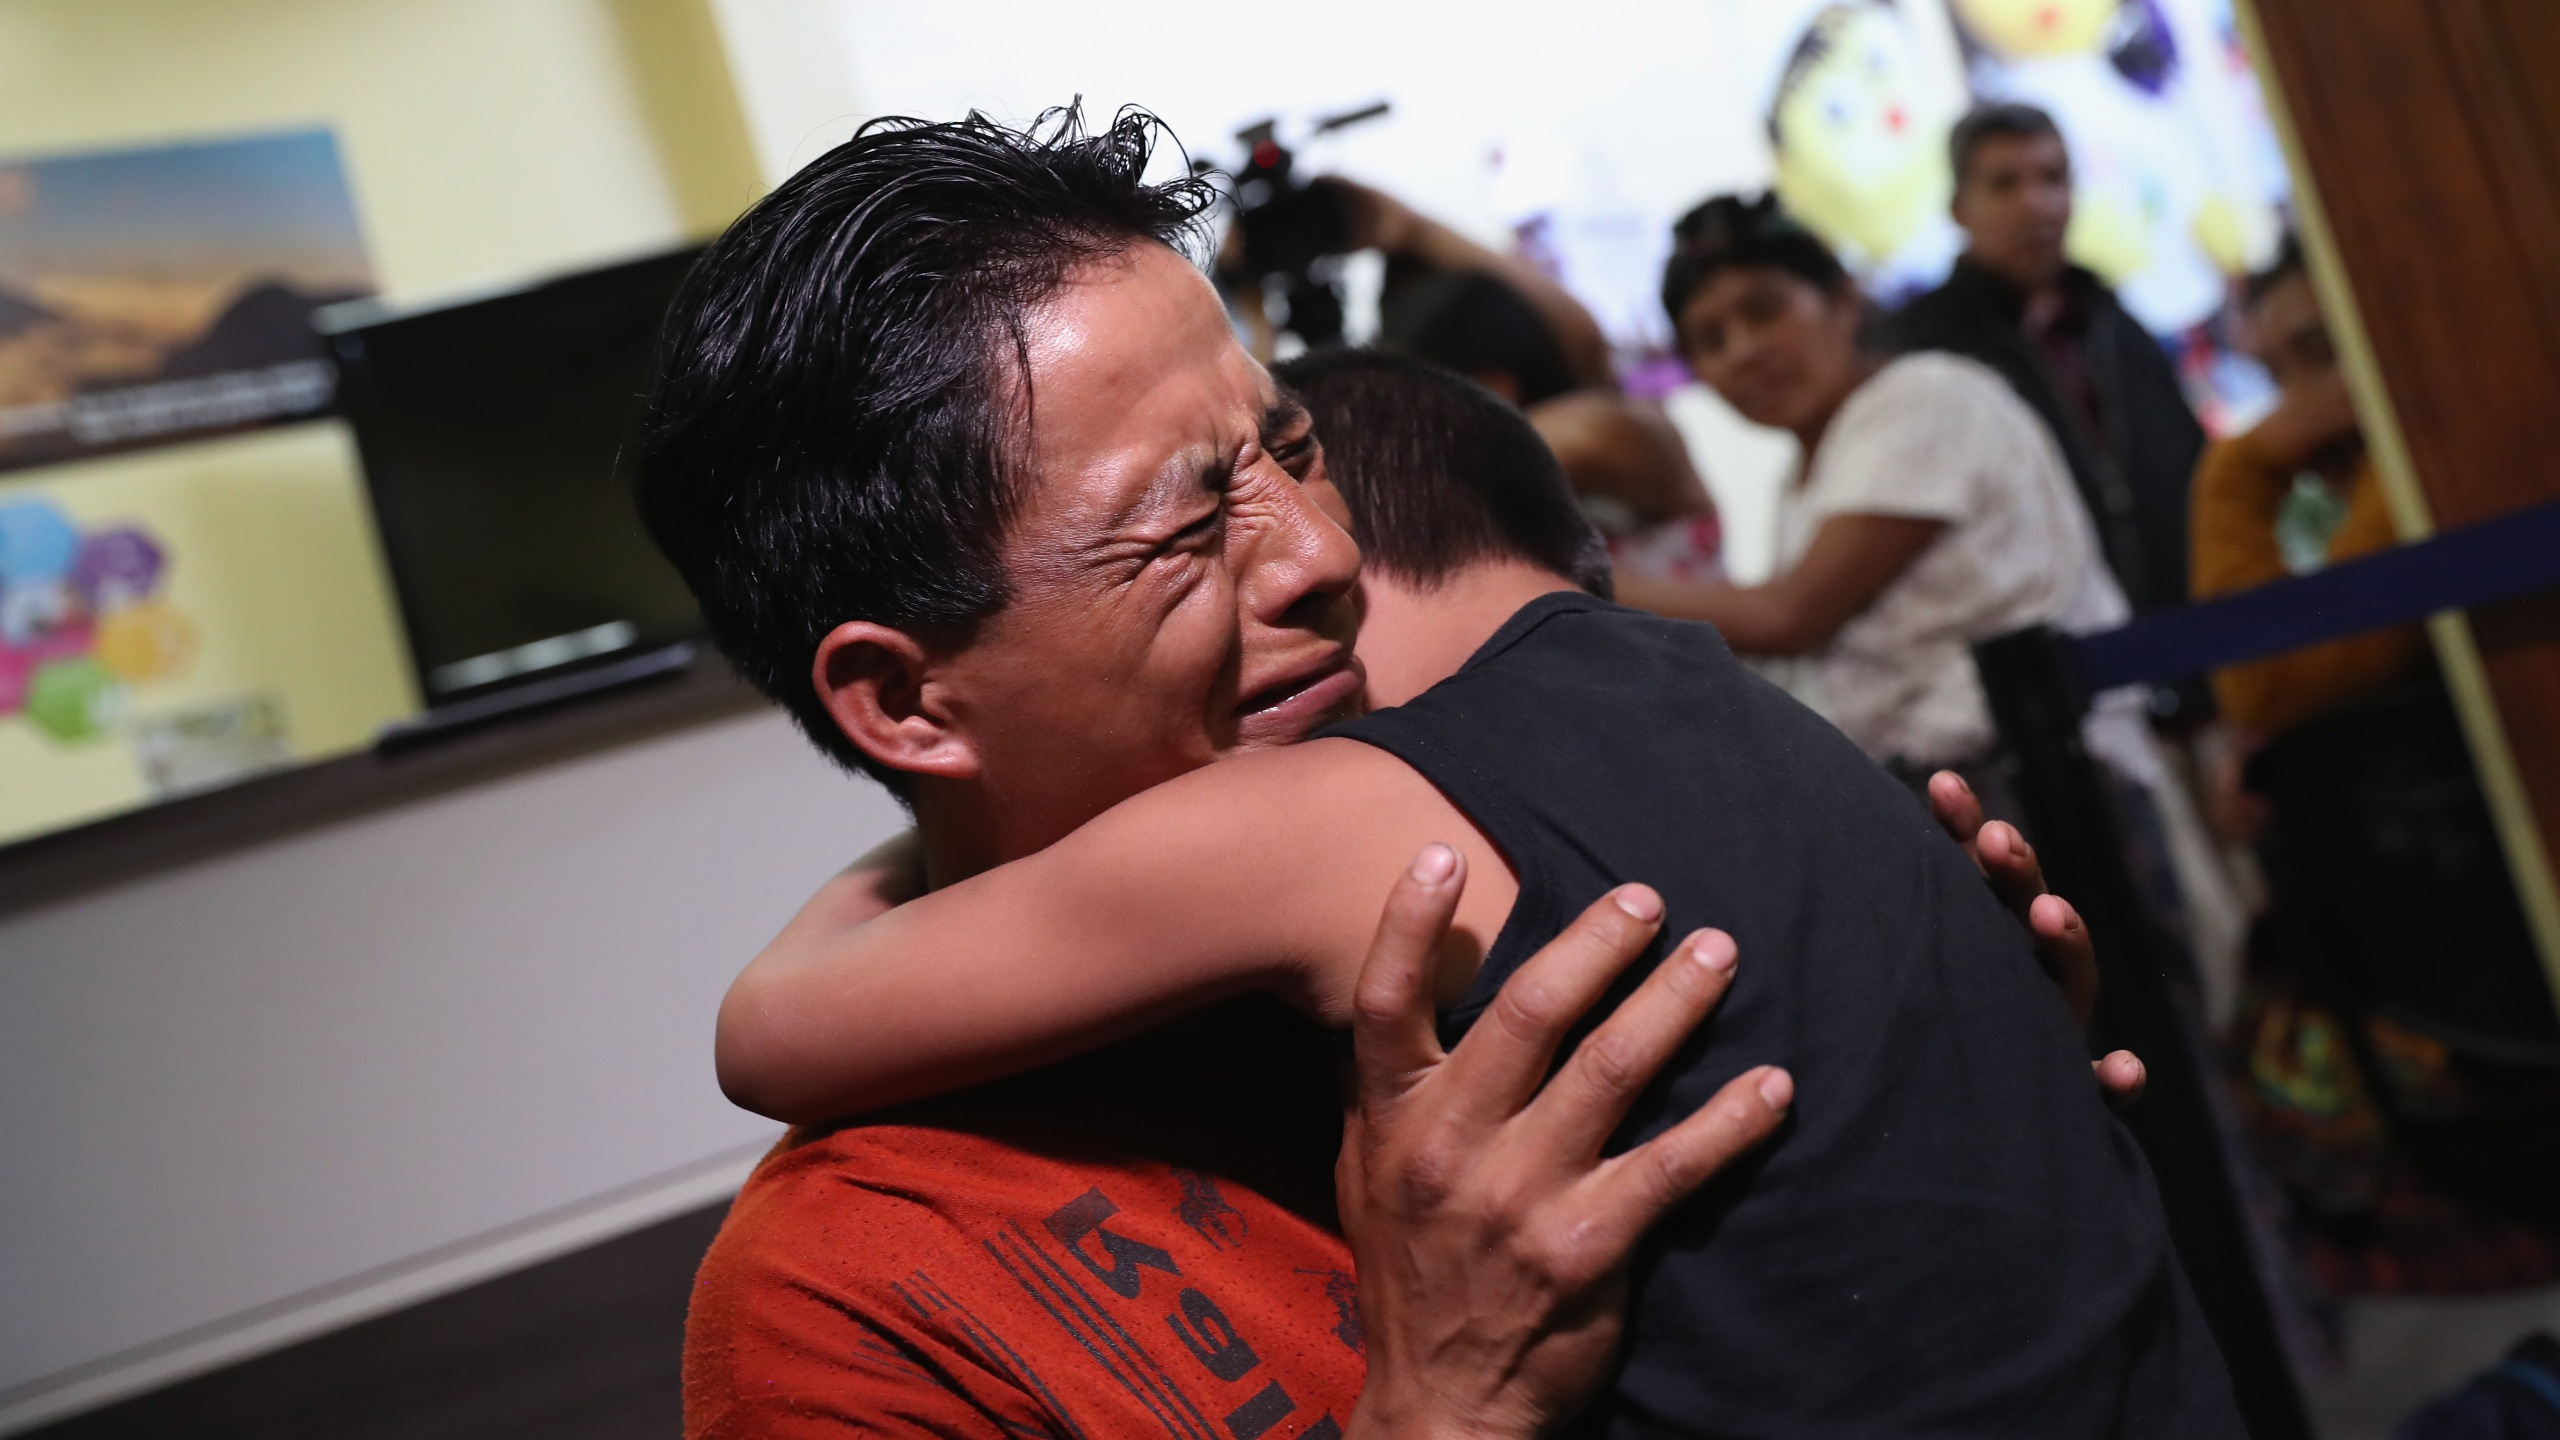 "A father embraces his son for the first time in months on Aug. 7, 2018 in Guatemala City, Guatemala. A group of nine children were flown from New York and reunited with their families, months after U.S. border agents separated them and deported the parents as part of the Trump administration's ""zero tolerance"" policy at the border. (Credit: John Moore/Getty Images)"